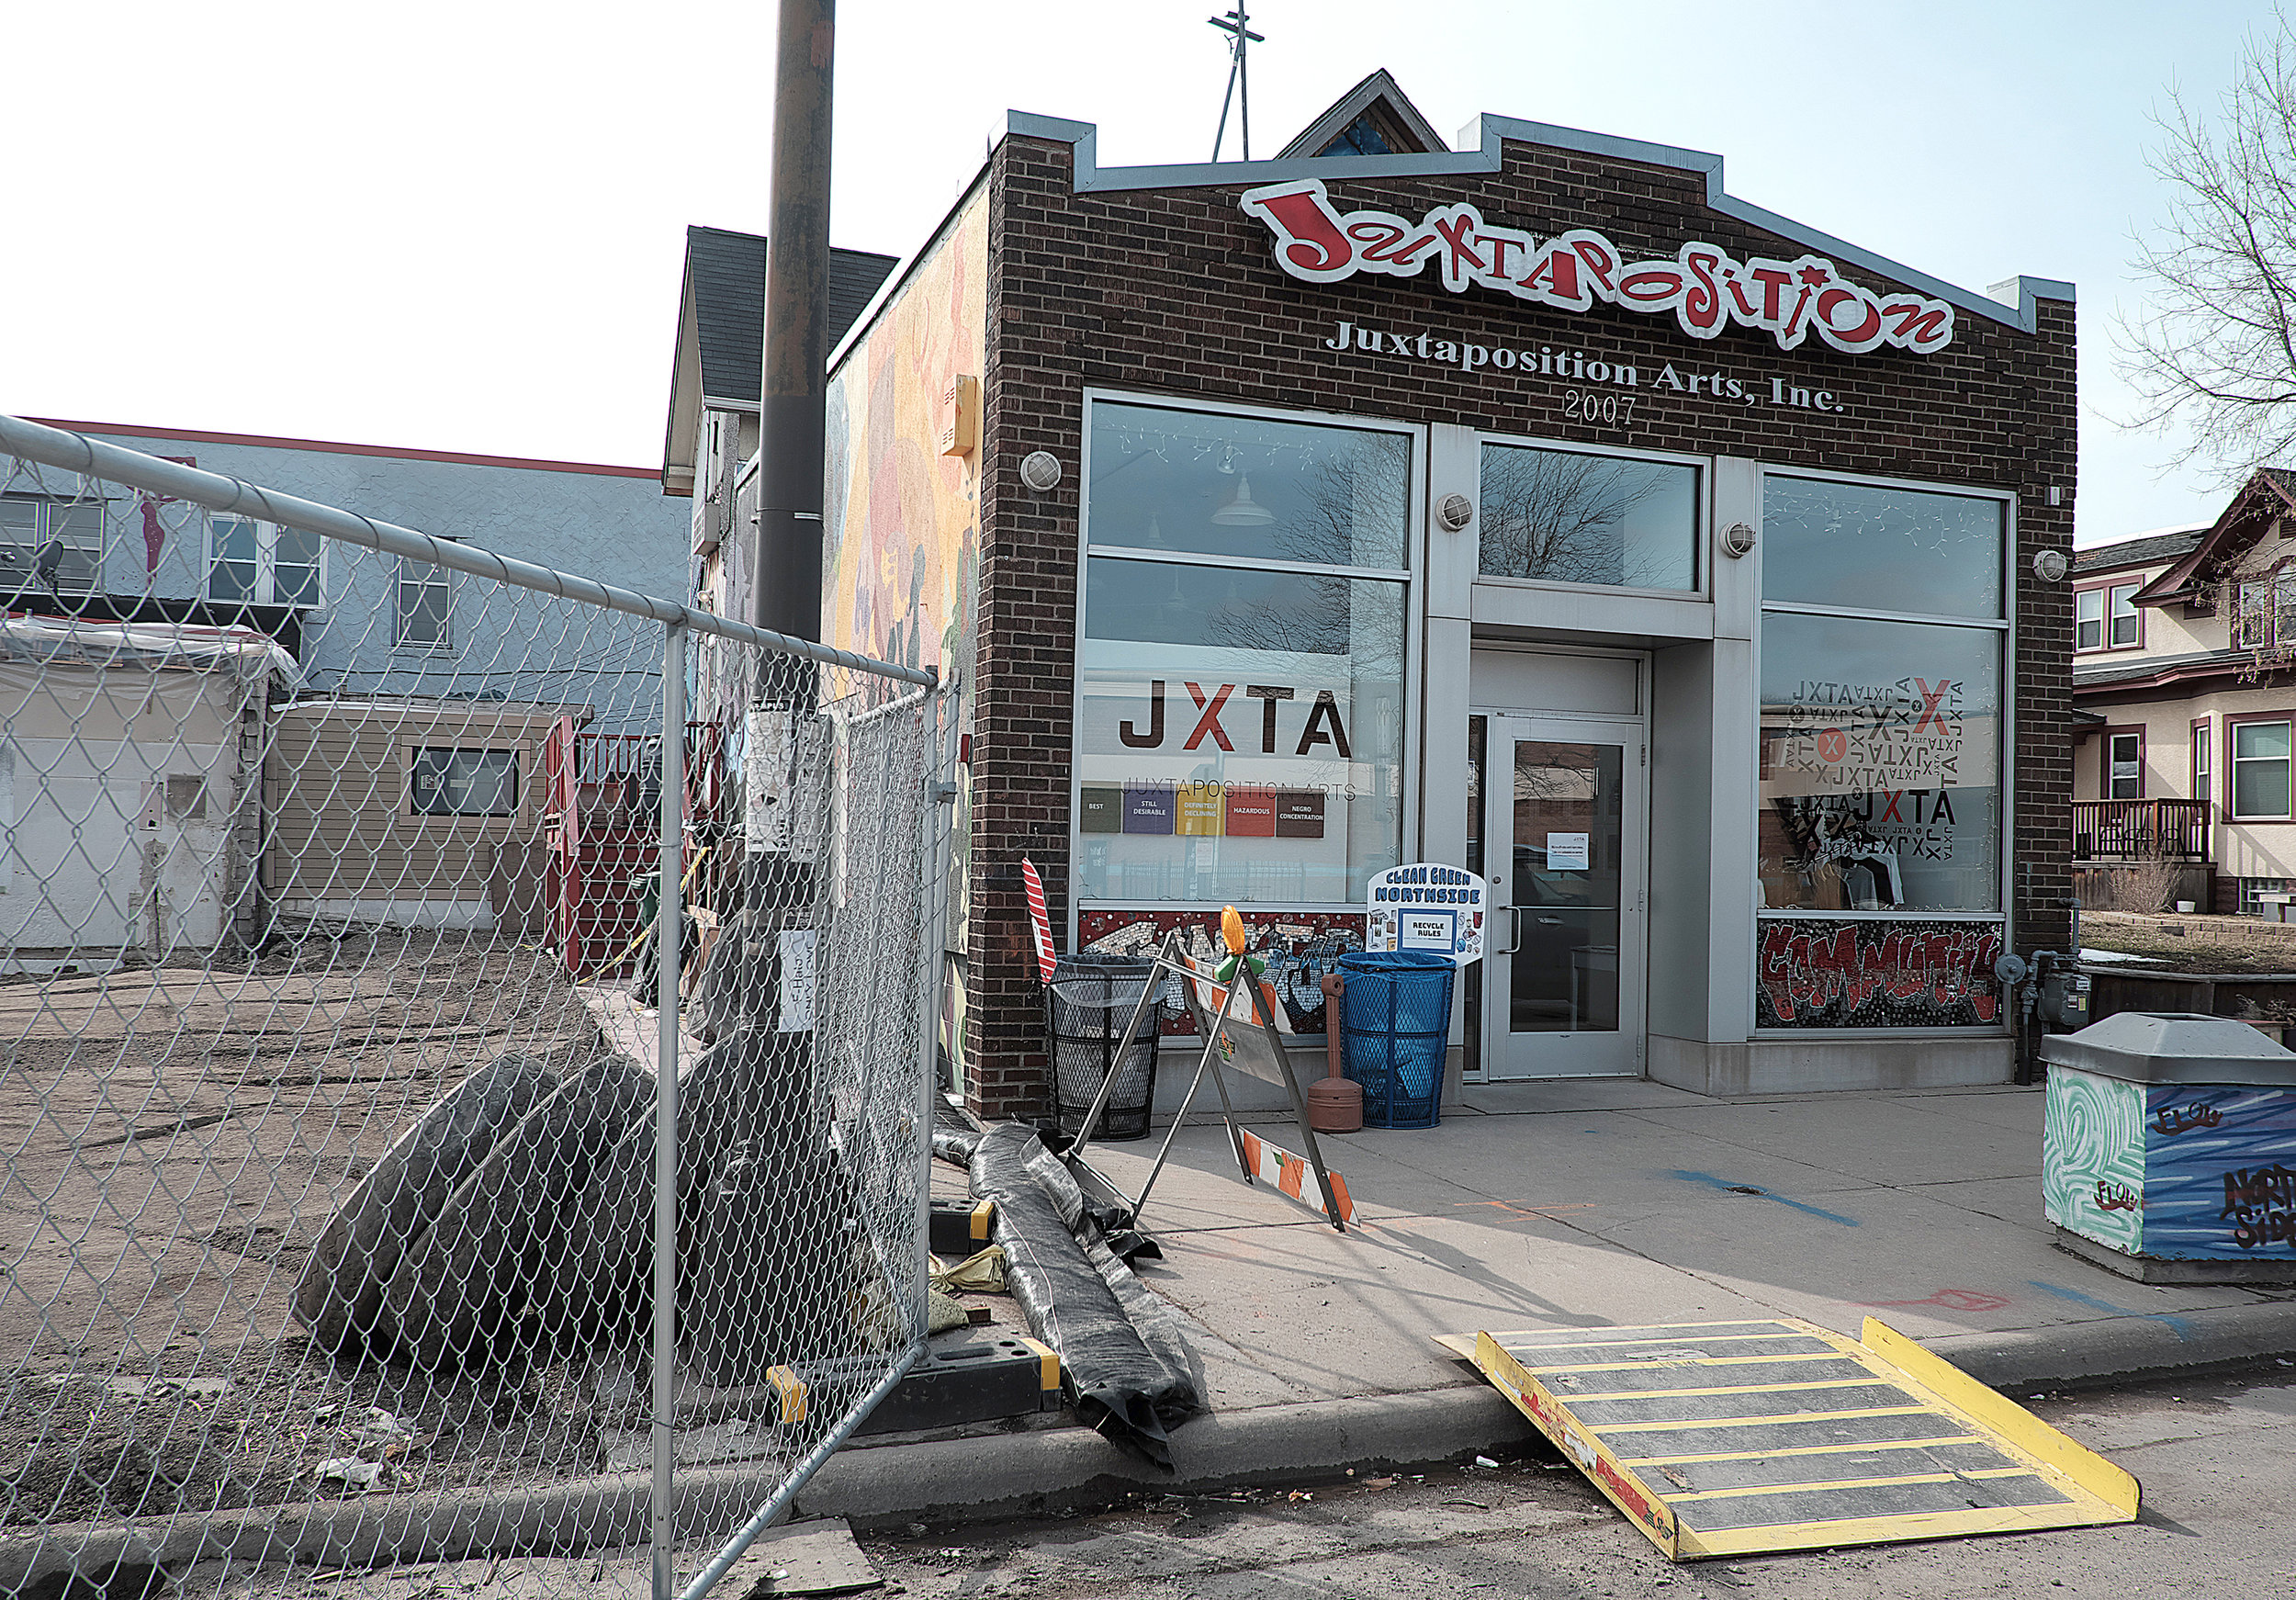 Operations continue at Juxtaposition Arts despite construction happening on its campus. Photo by David Pierini